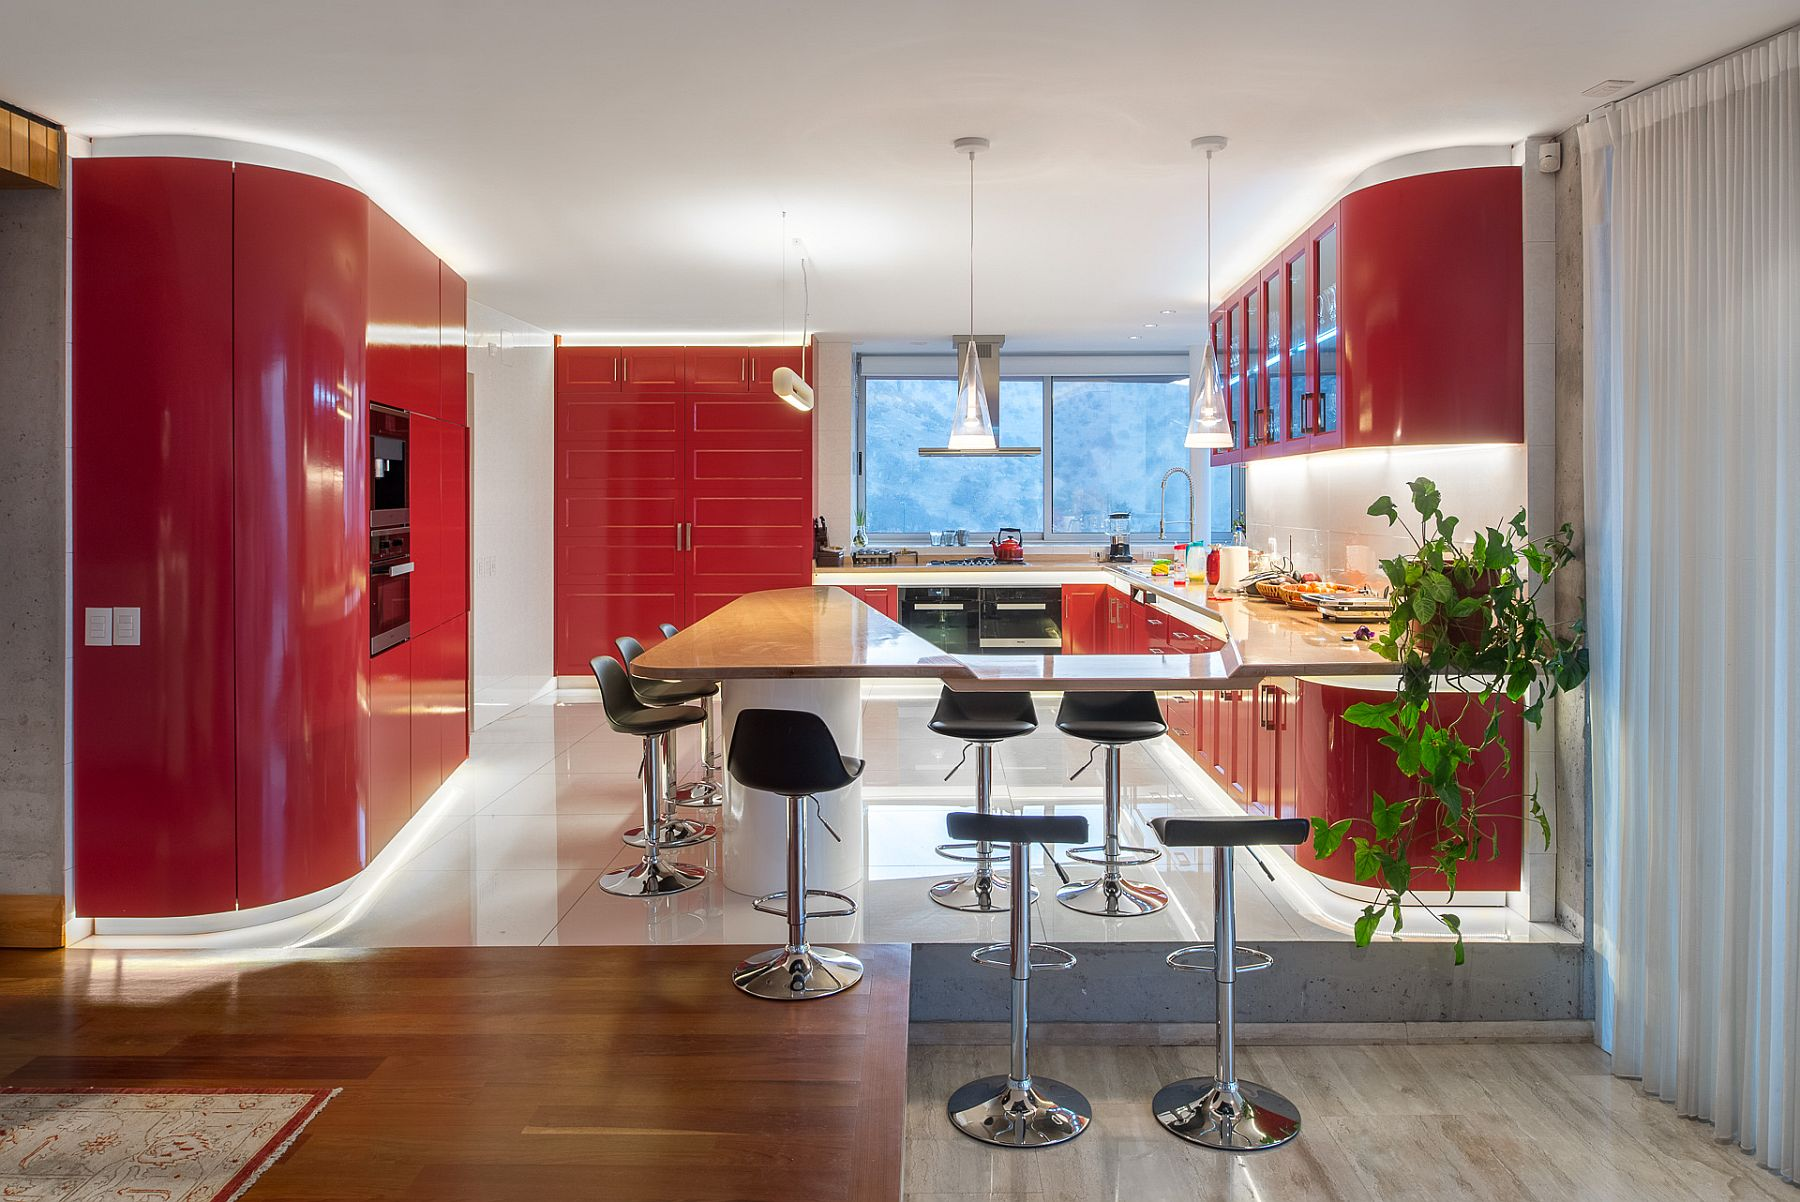 Contemporary kitchen in red and white with dazzling LED lighting